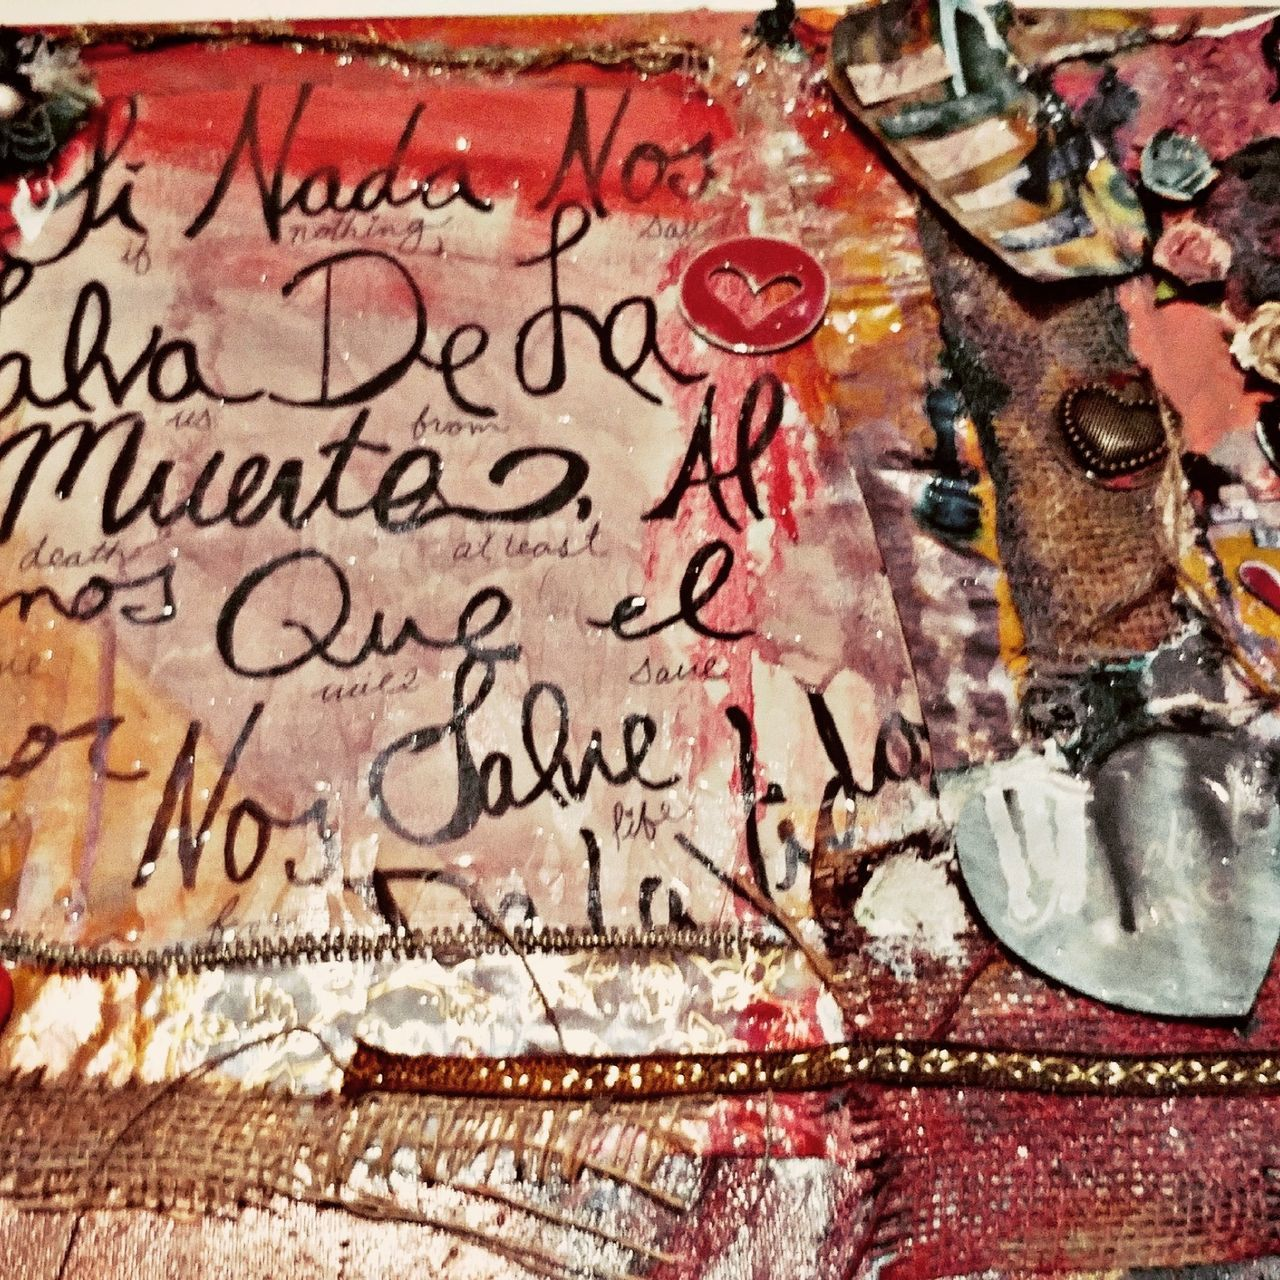 Text No People Communication Handwriting  Close-up Indoors  Day Mixedmedia Architecture Sticky Text Spray Paint Variation Multi Colored Creativity Art And Craft Outdoors Backgrounds Full Frame Graffiti Pablo Neruda Love Save Death Life